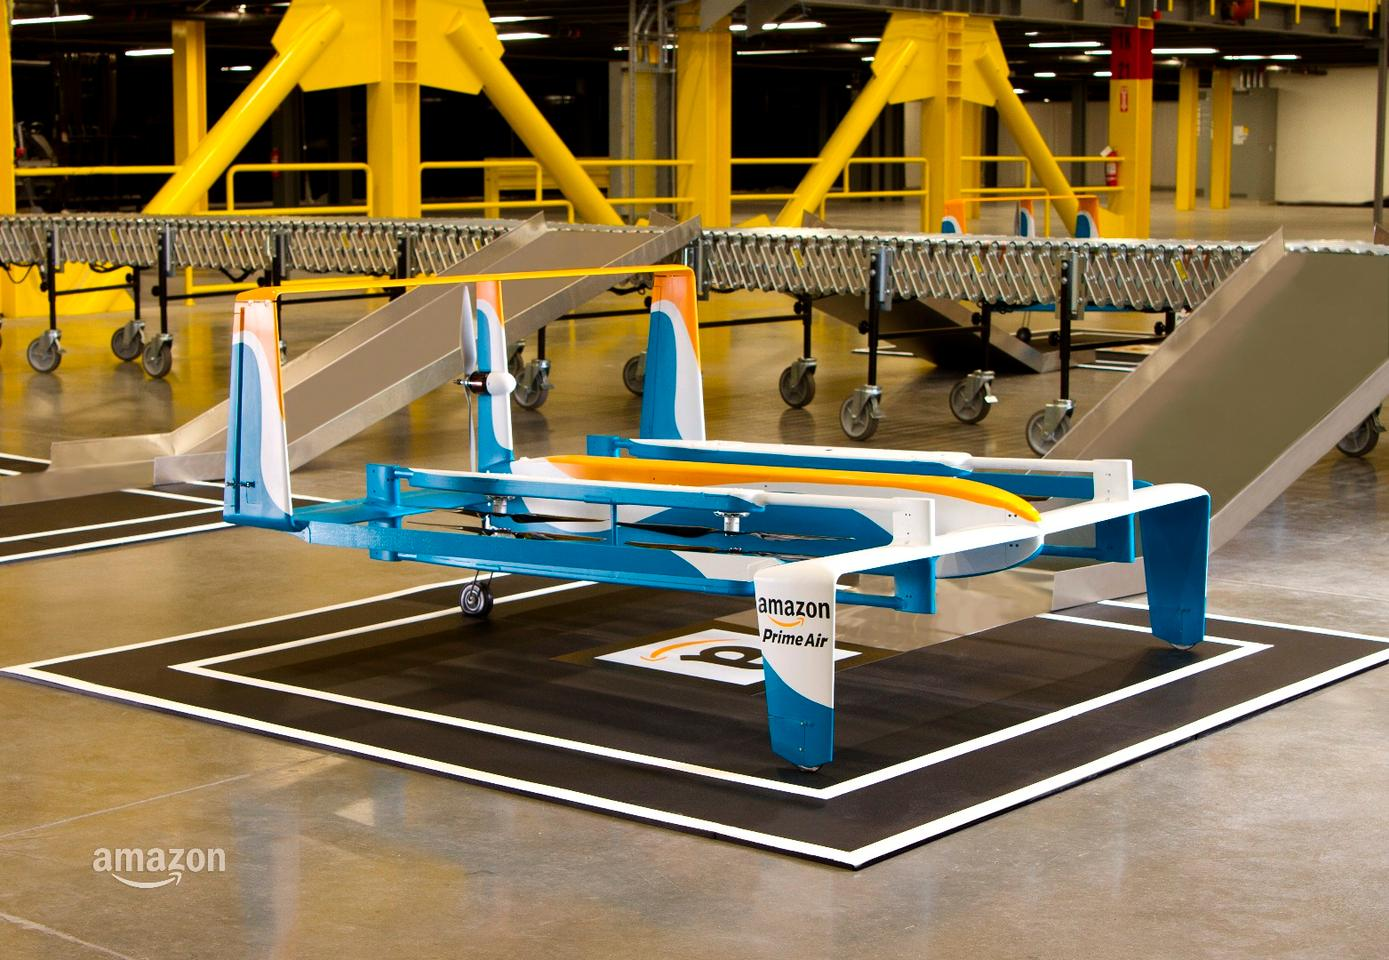 The agreement will enable Amazon to test out the technologies behind its drone delivery service